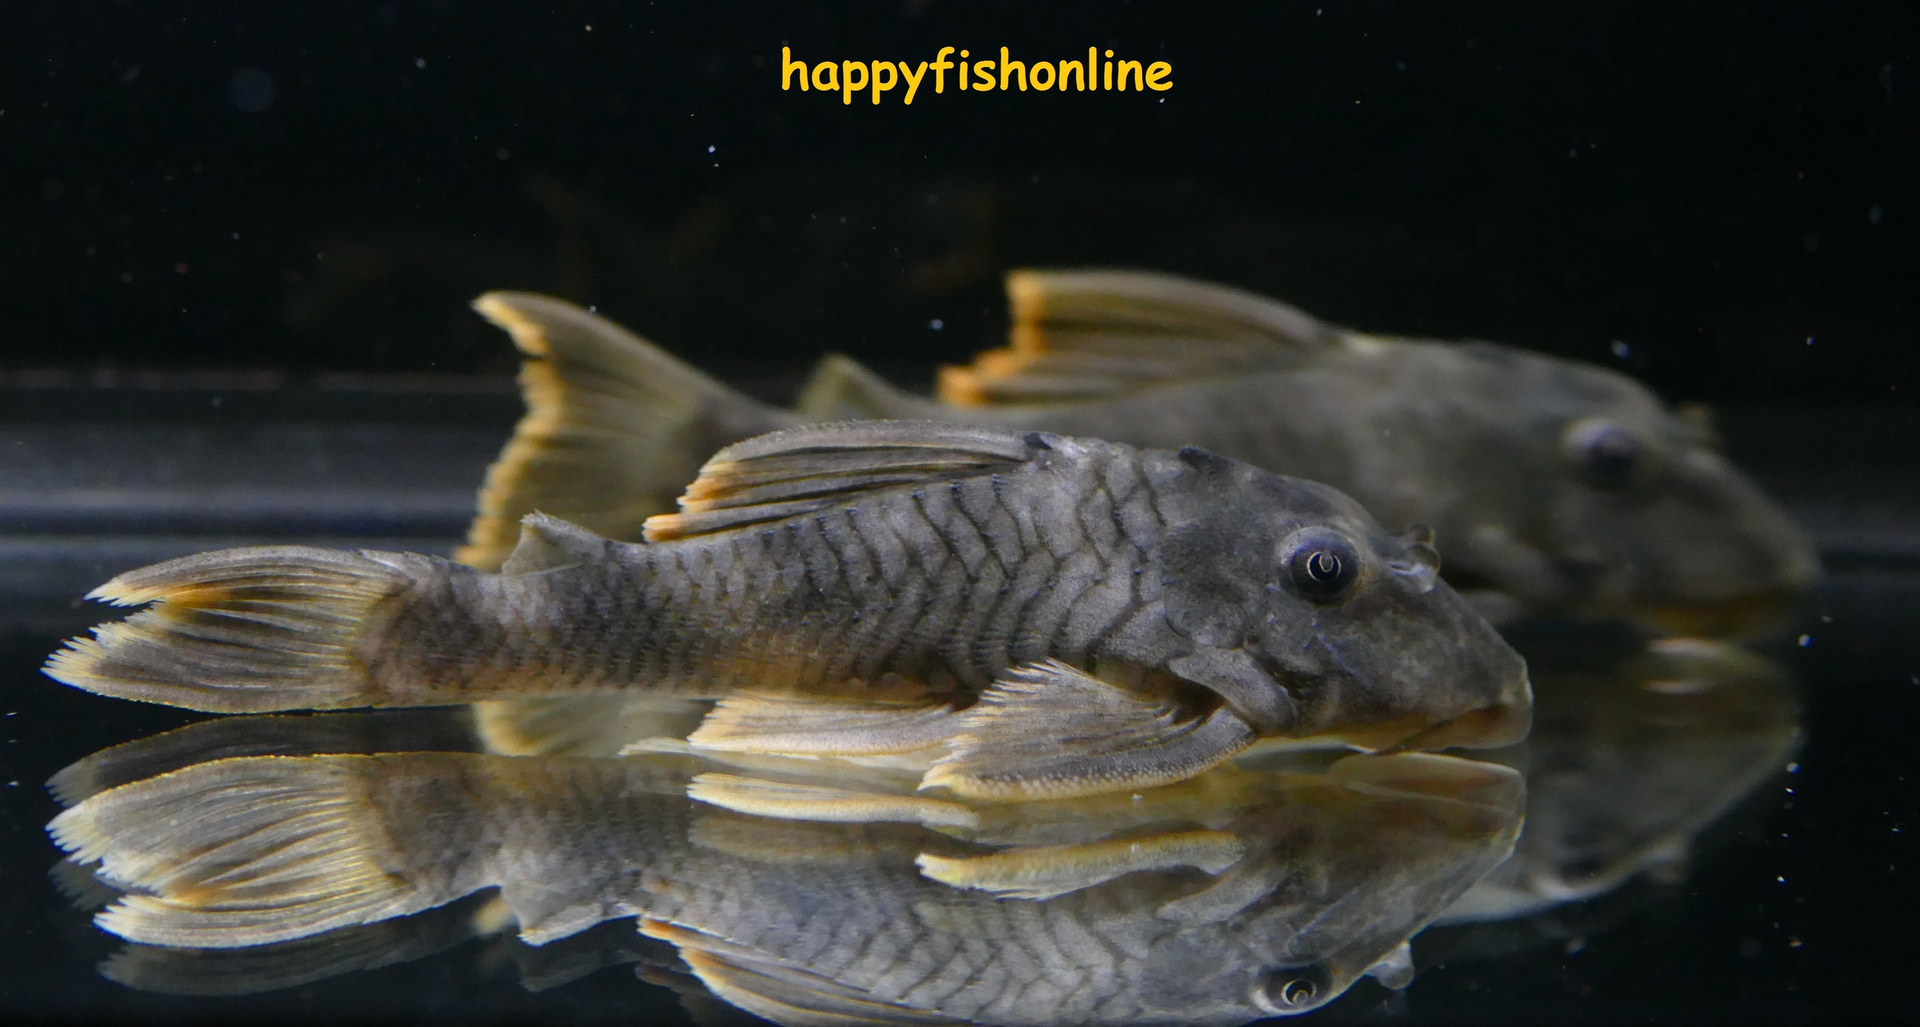 L076 REDFIN TIGER PLECO by * happyfishonline com *